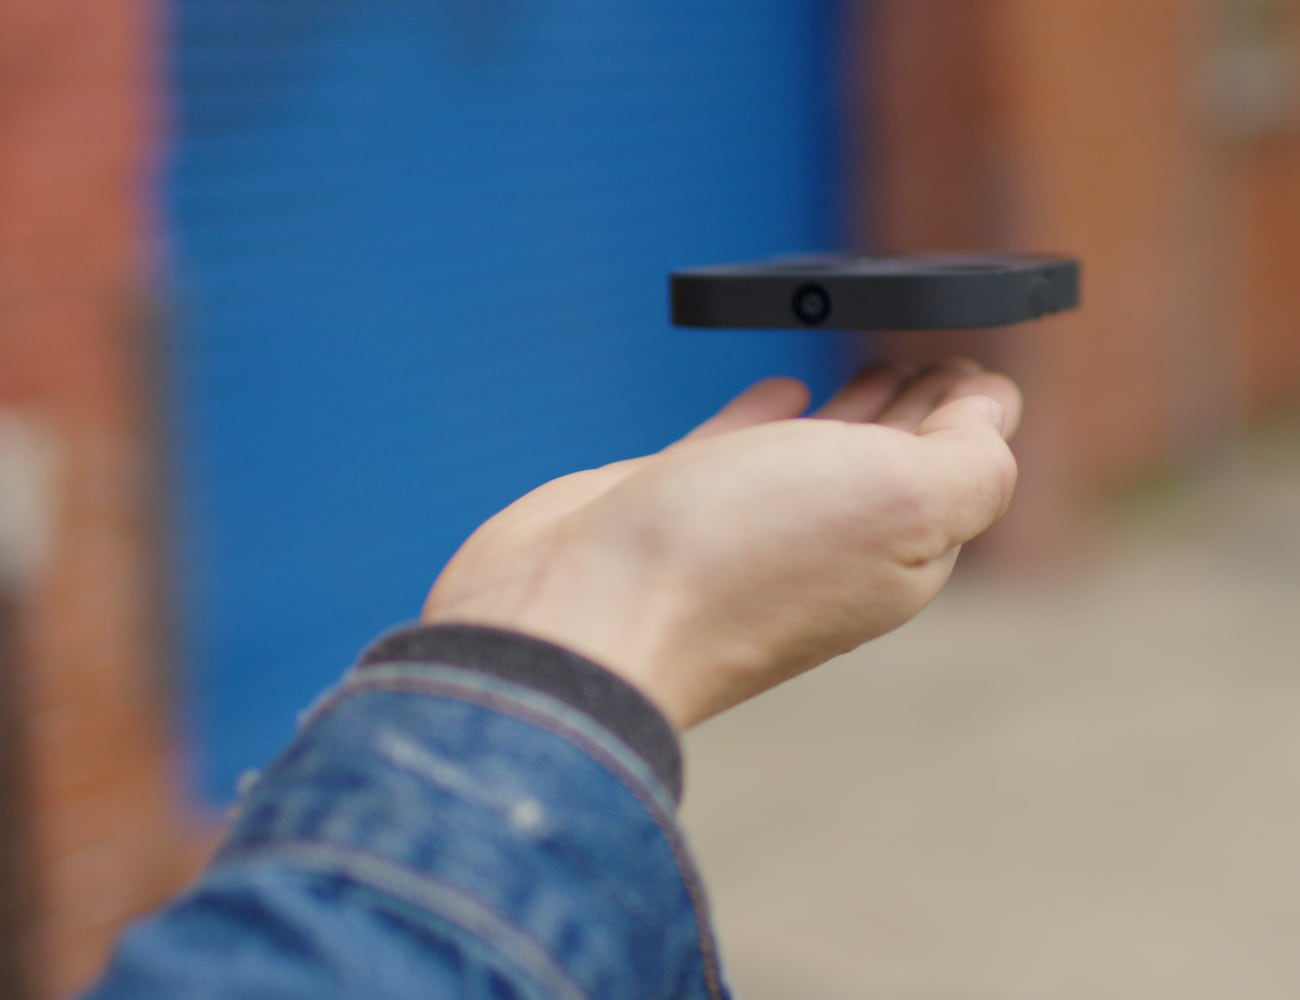 AIR PIX Pocket-Sized Aerial Camera lets you take the best selfies hands-free